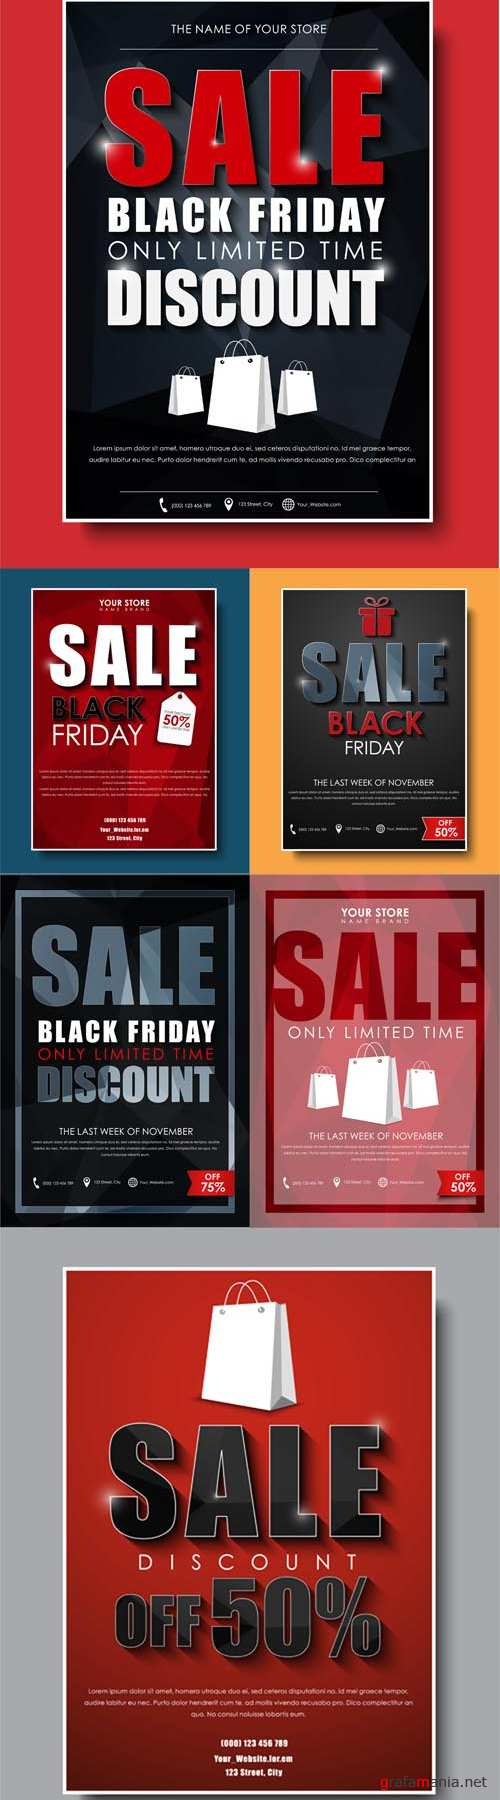 Vector Template Poster Flyers Banners for Sales on Black Friday